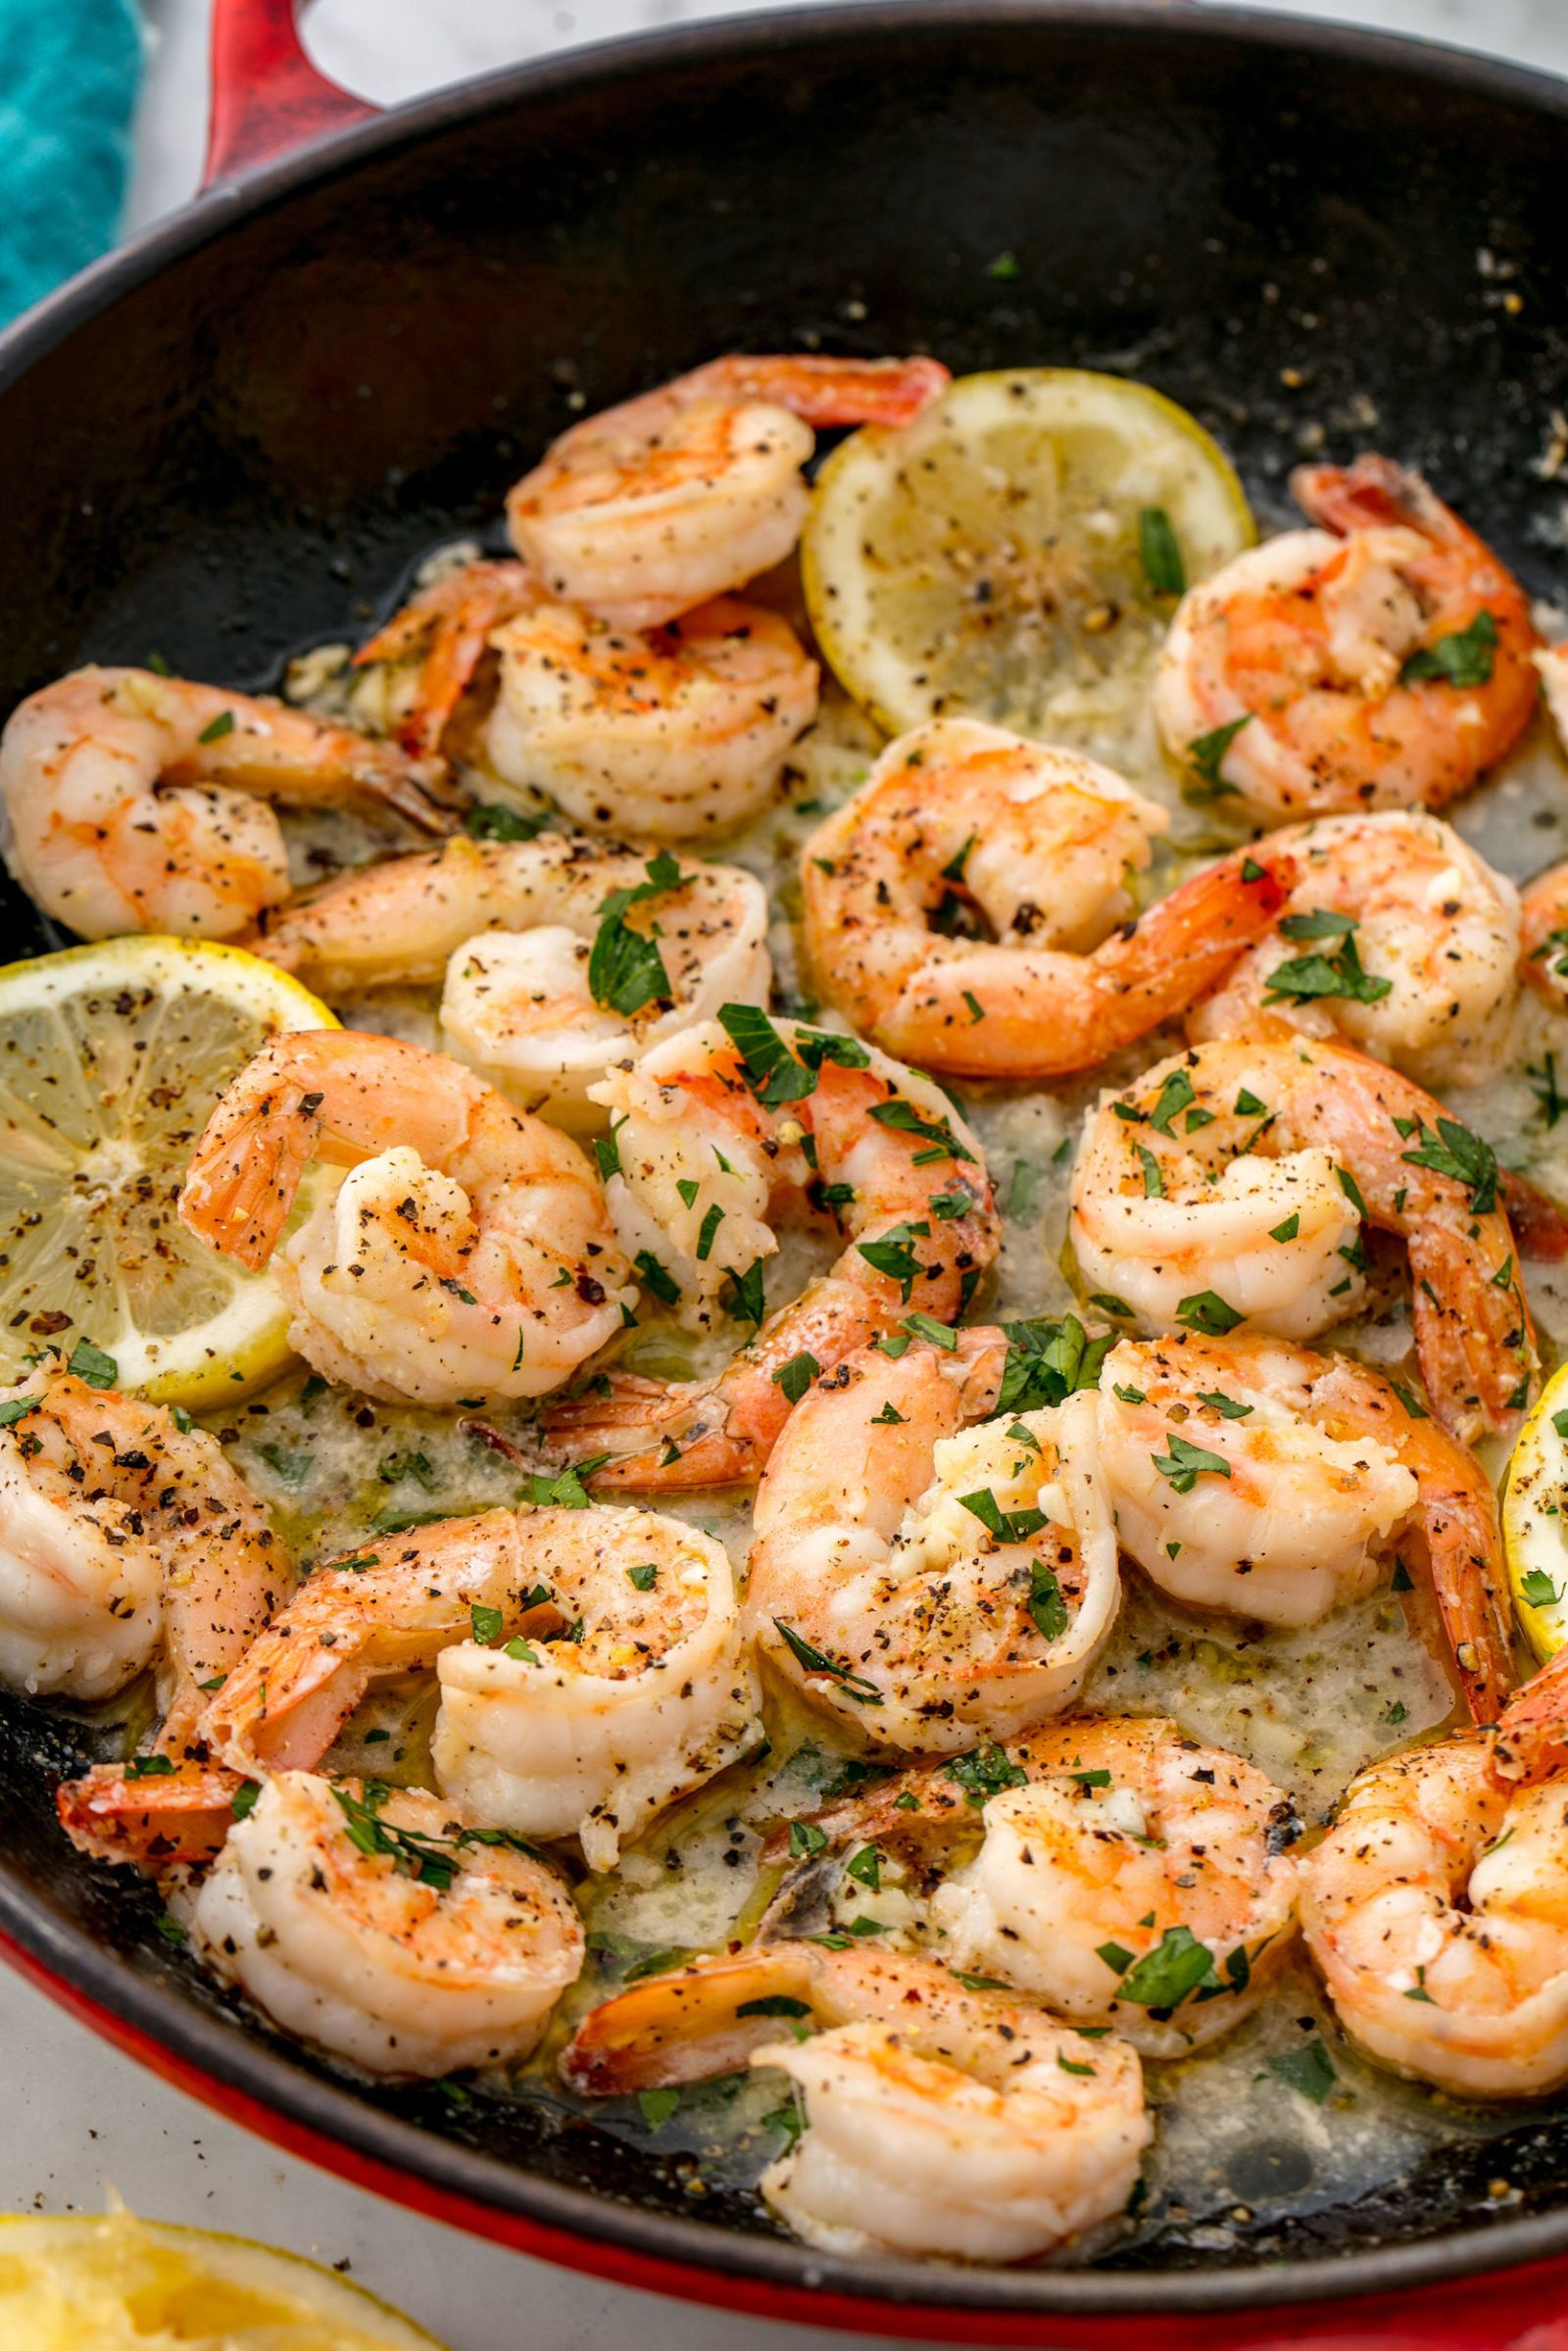 How to cook shrimp Once again about delicious and simple dishes